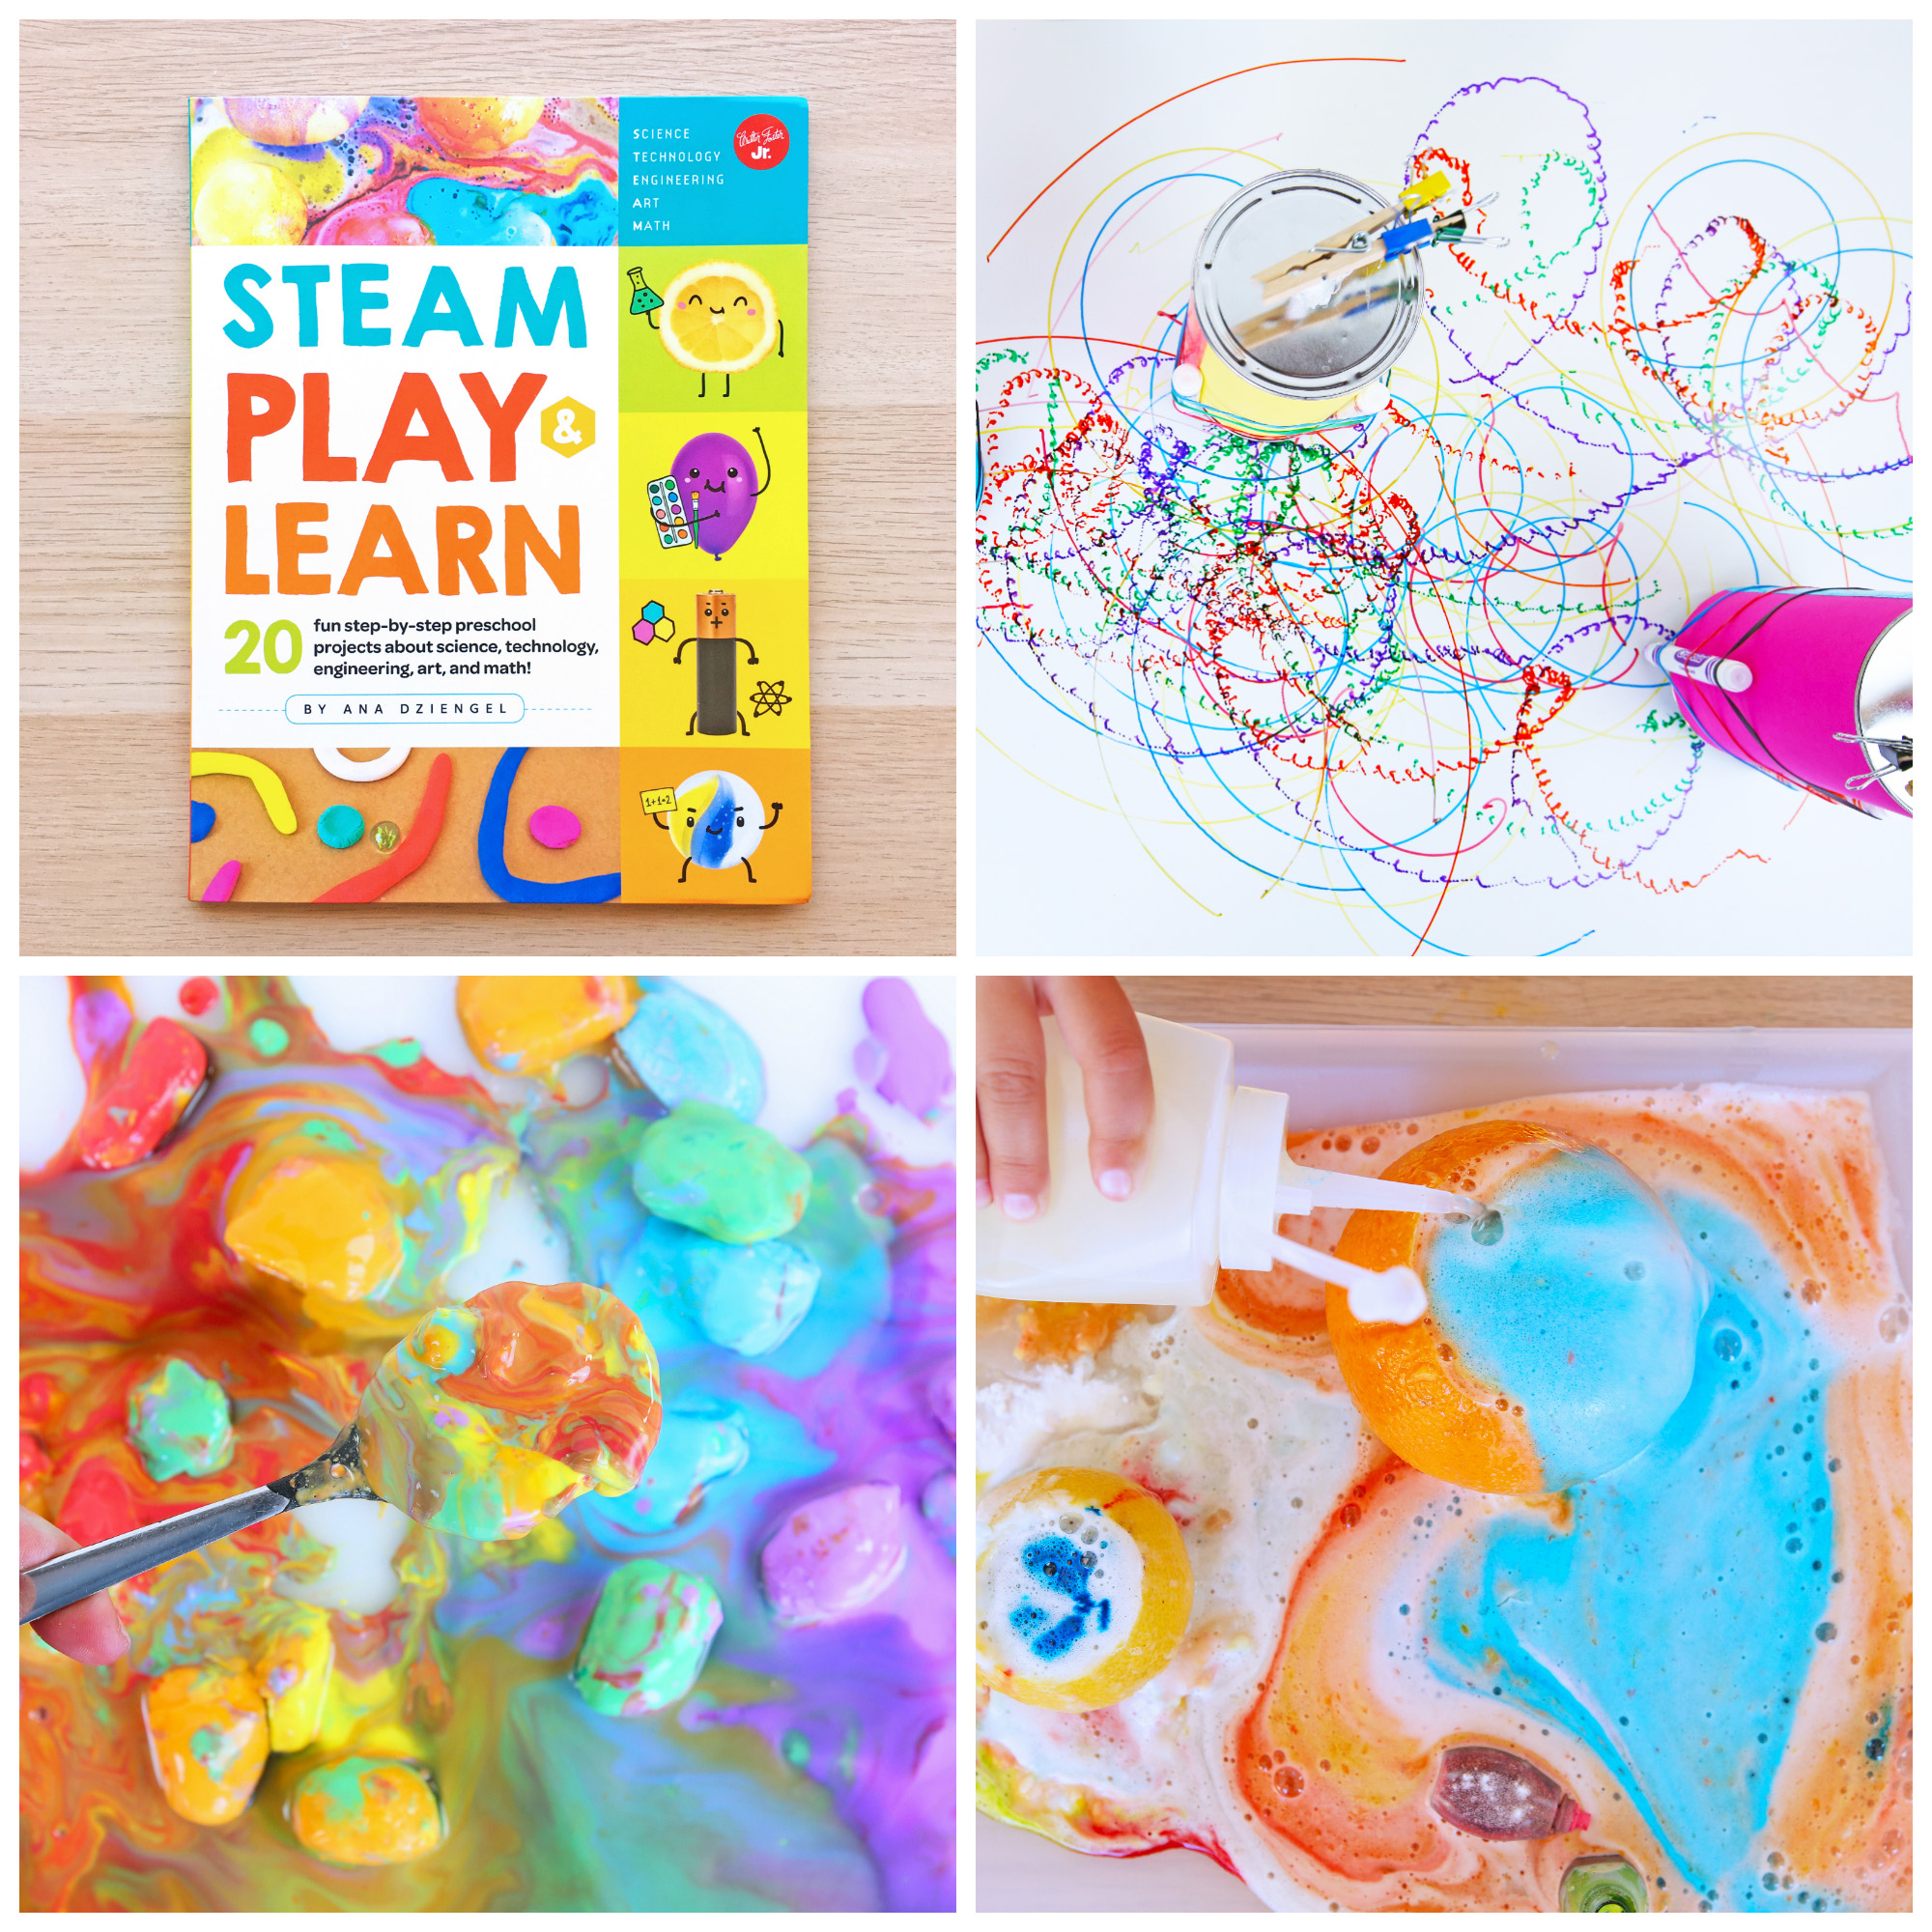 STEAM PLAY AND LEARN by Ana Dziengel